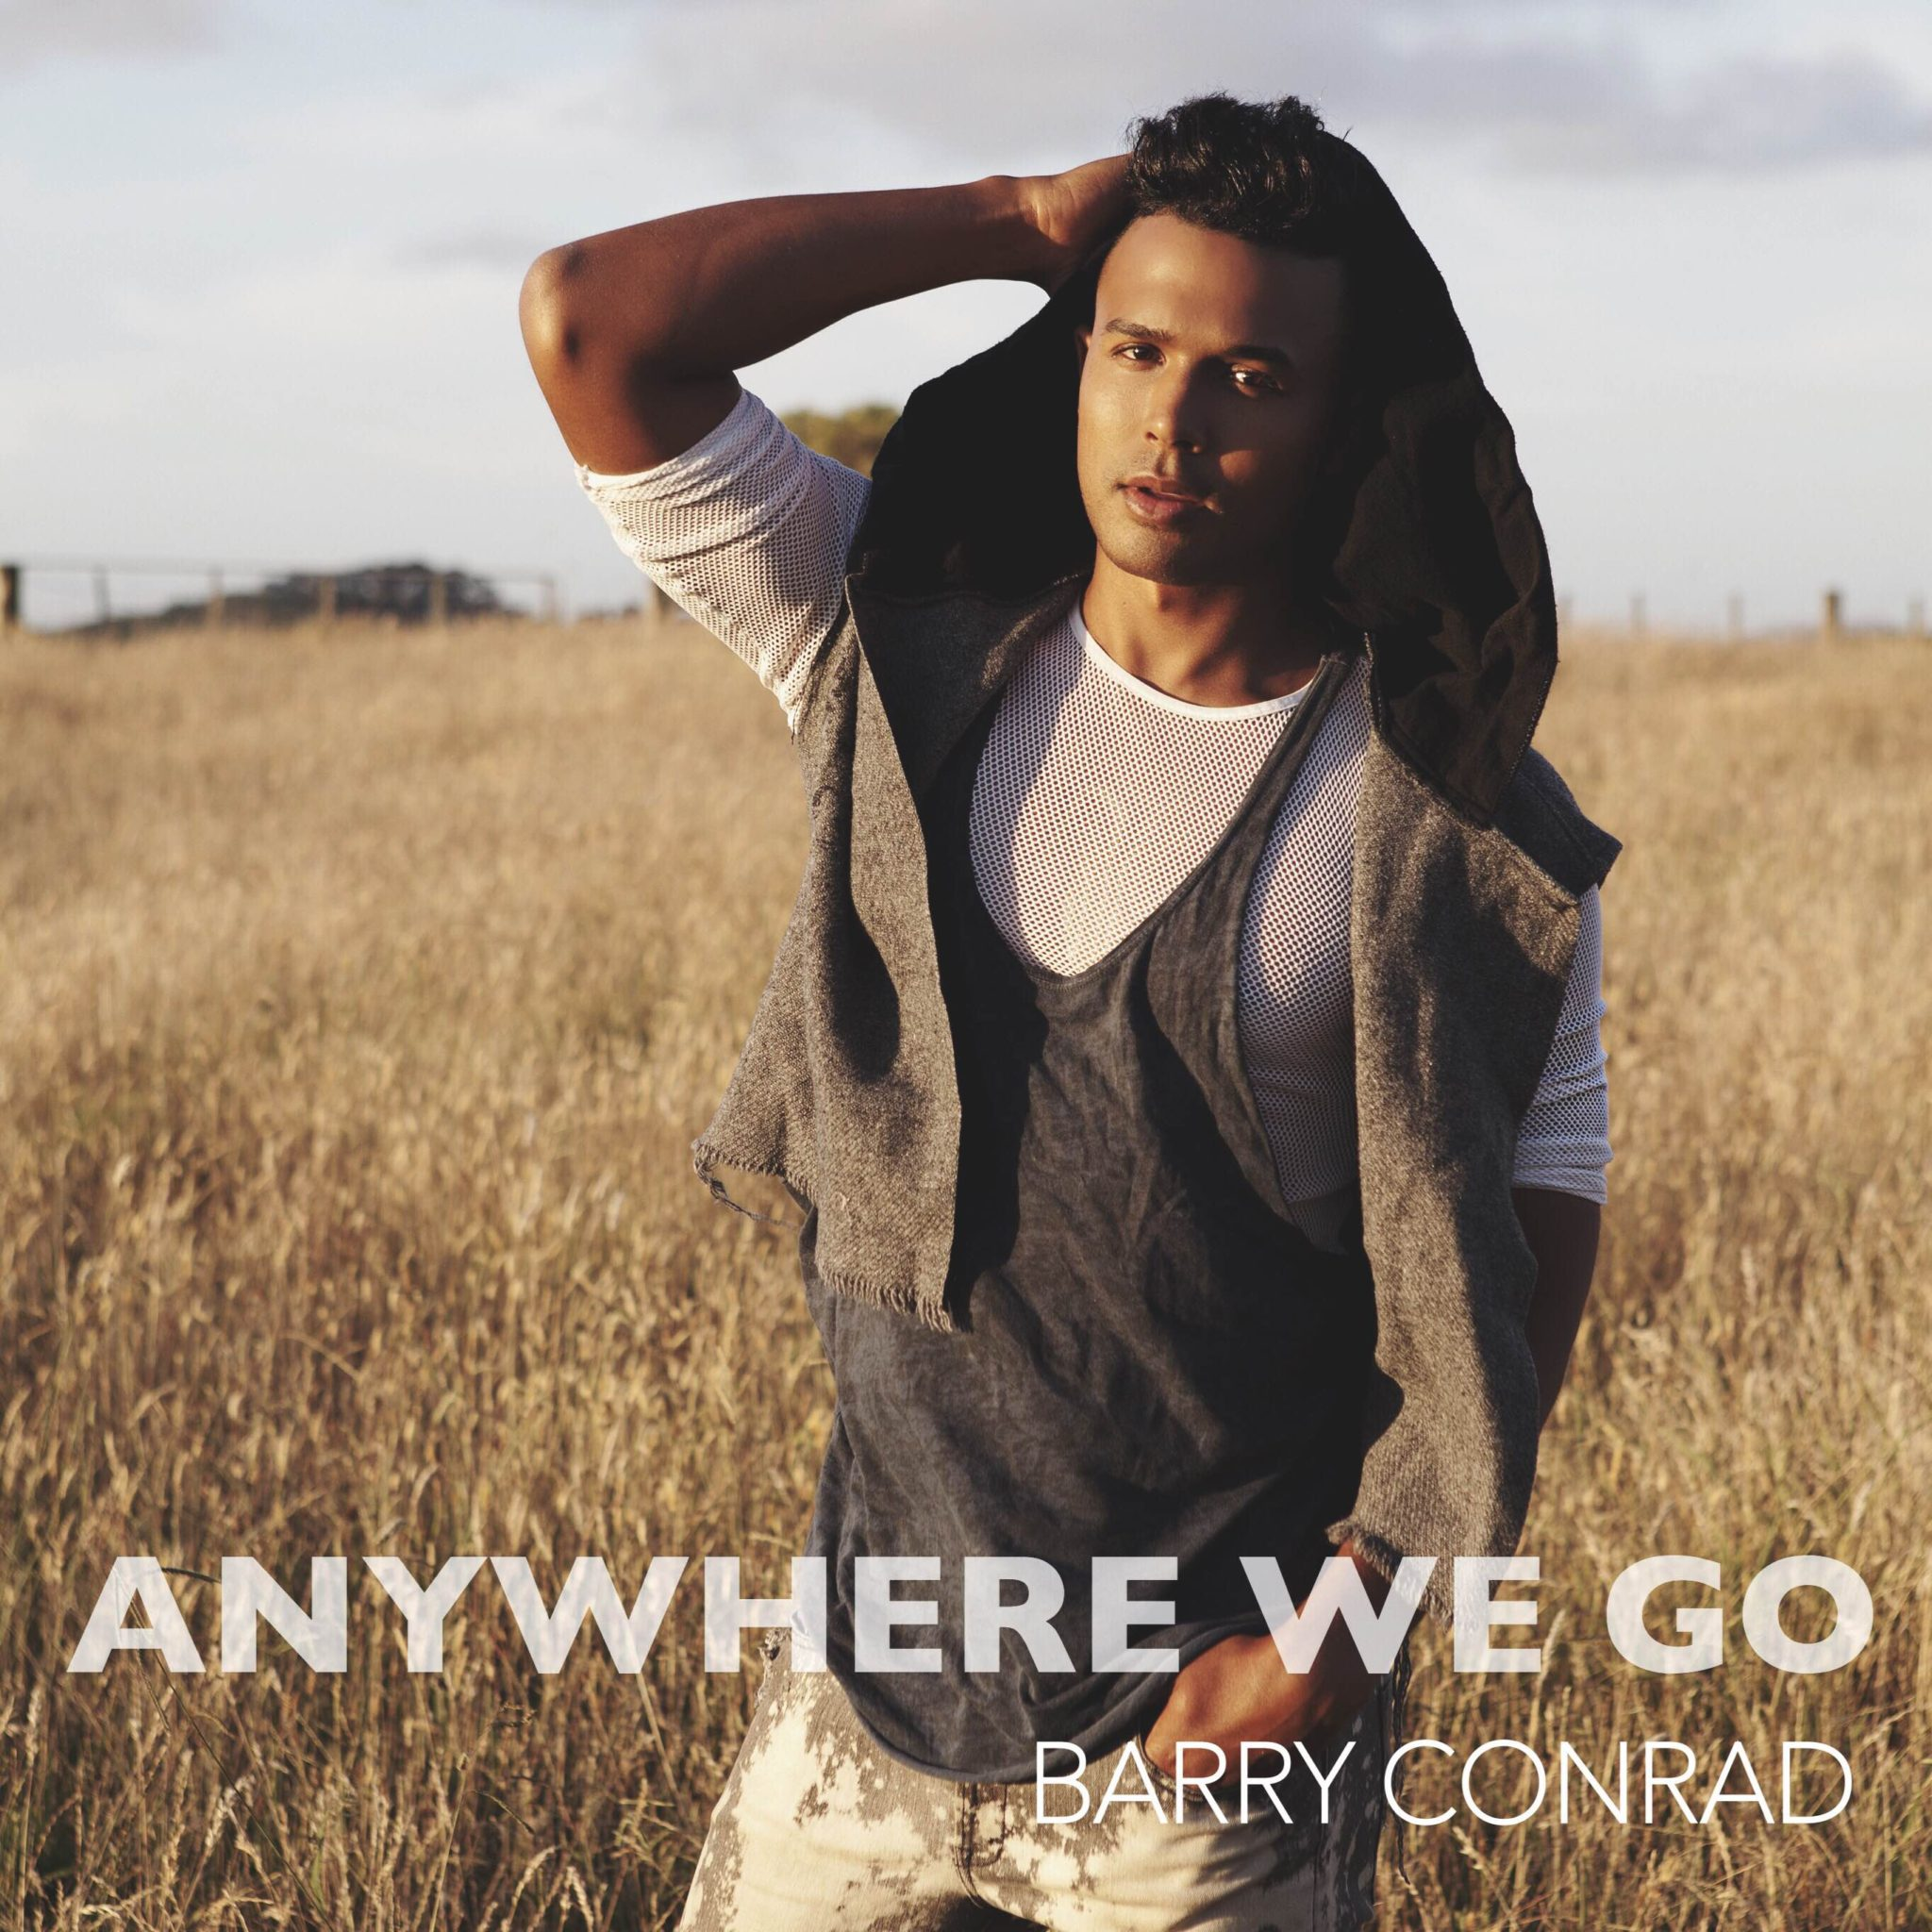 Anywhere We Go - Barry ConradLYRICS: 75%SONGWRITING: 85%PERFORMANCE: 90%PRODUCTION QUALITY: 90%ORIGINALITY: 70%OVERALL SCORE: 82%